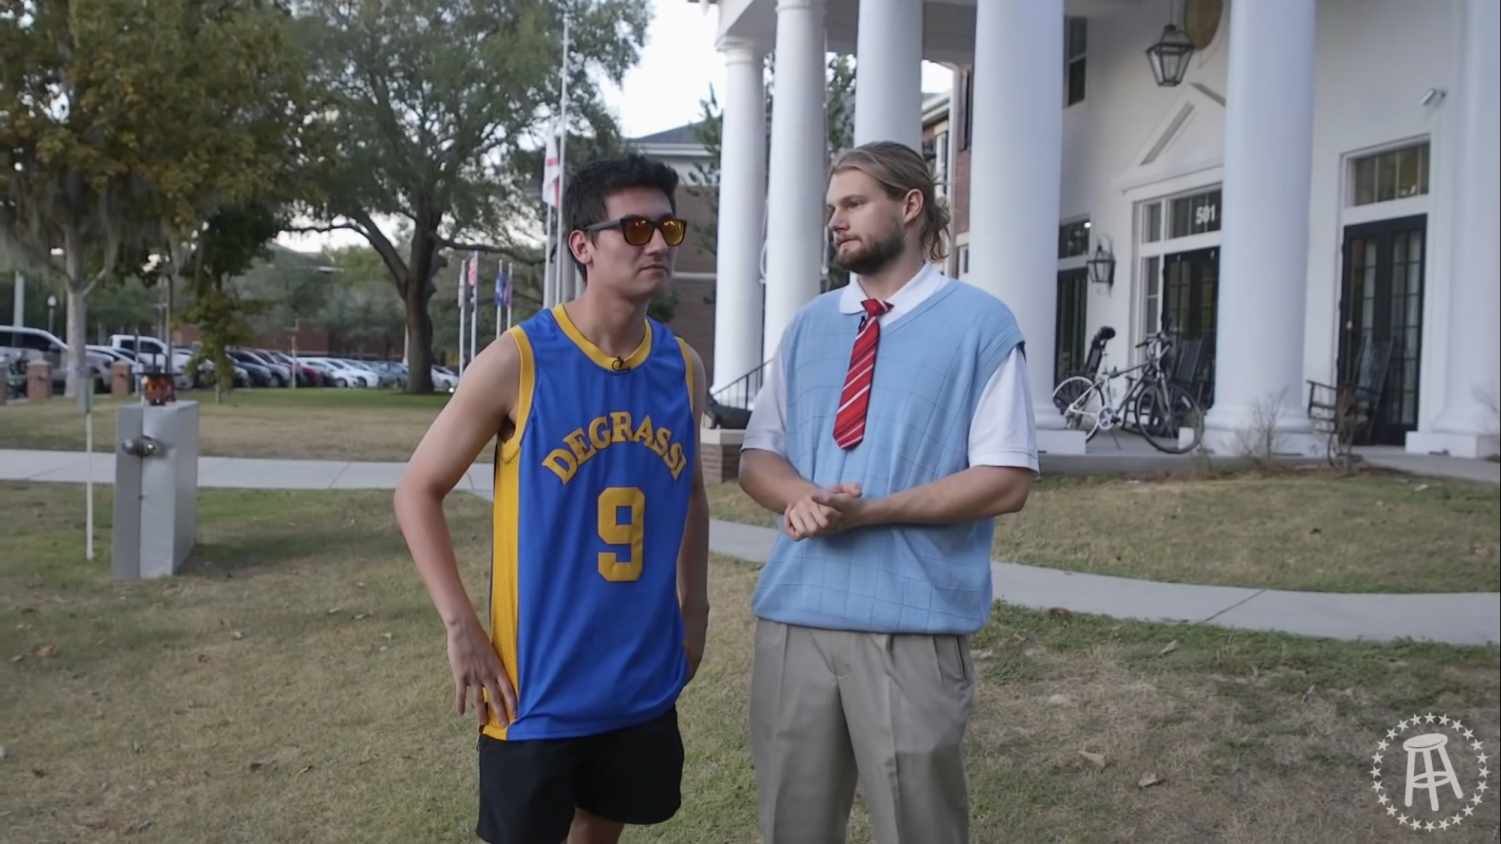 Jeff Netgate being interviewed by Barstool Sports' Caleb Pressley